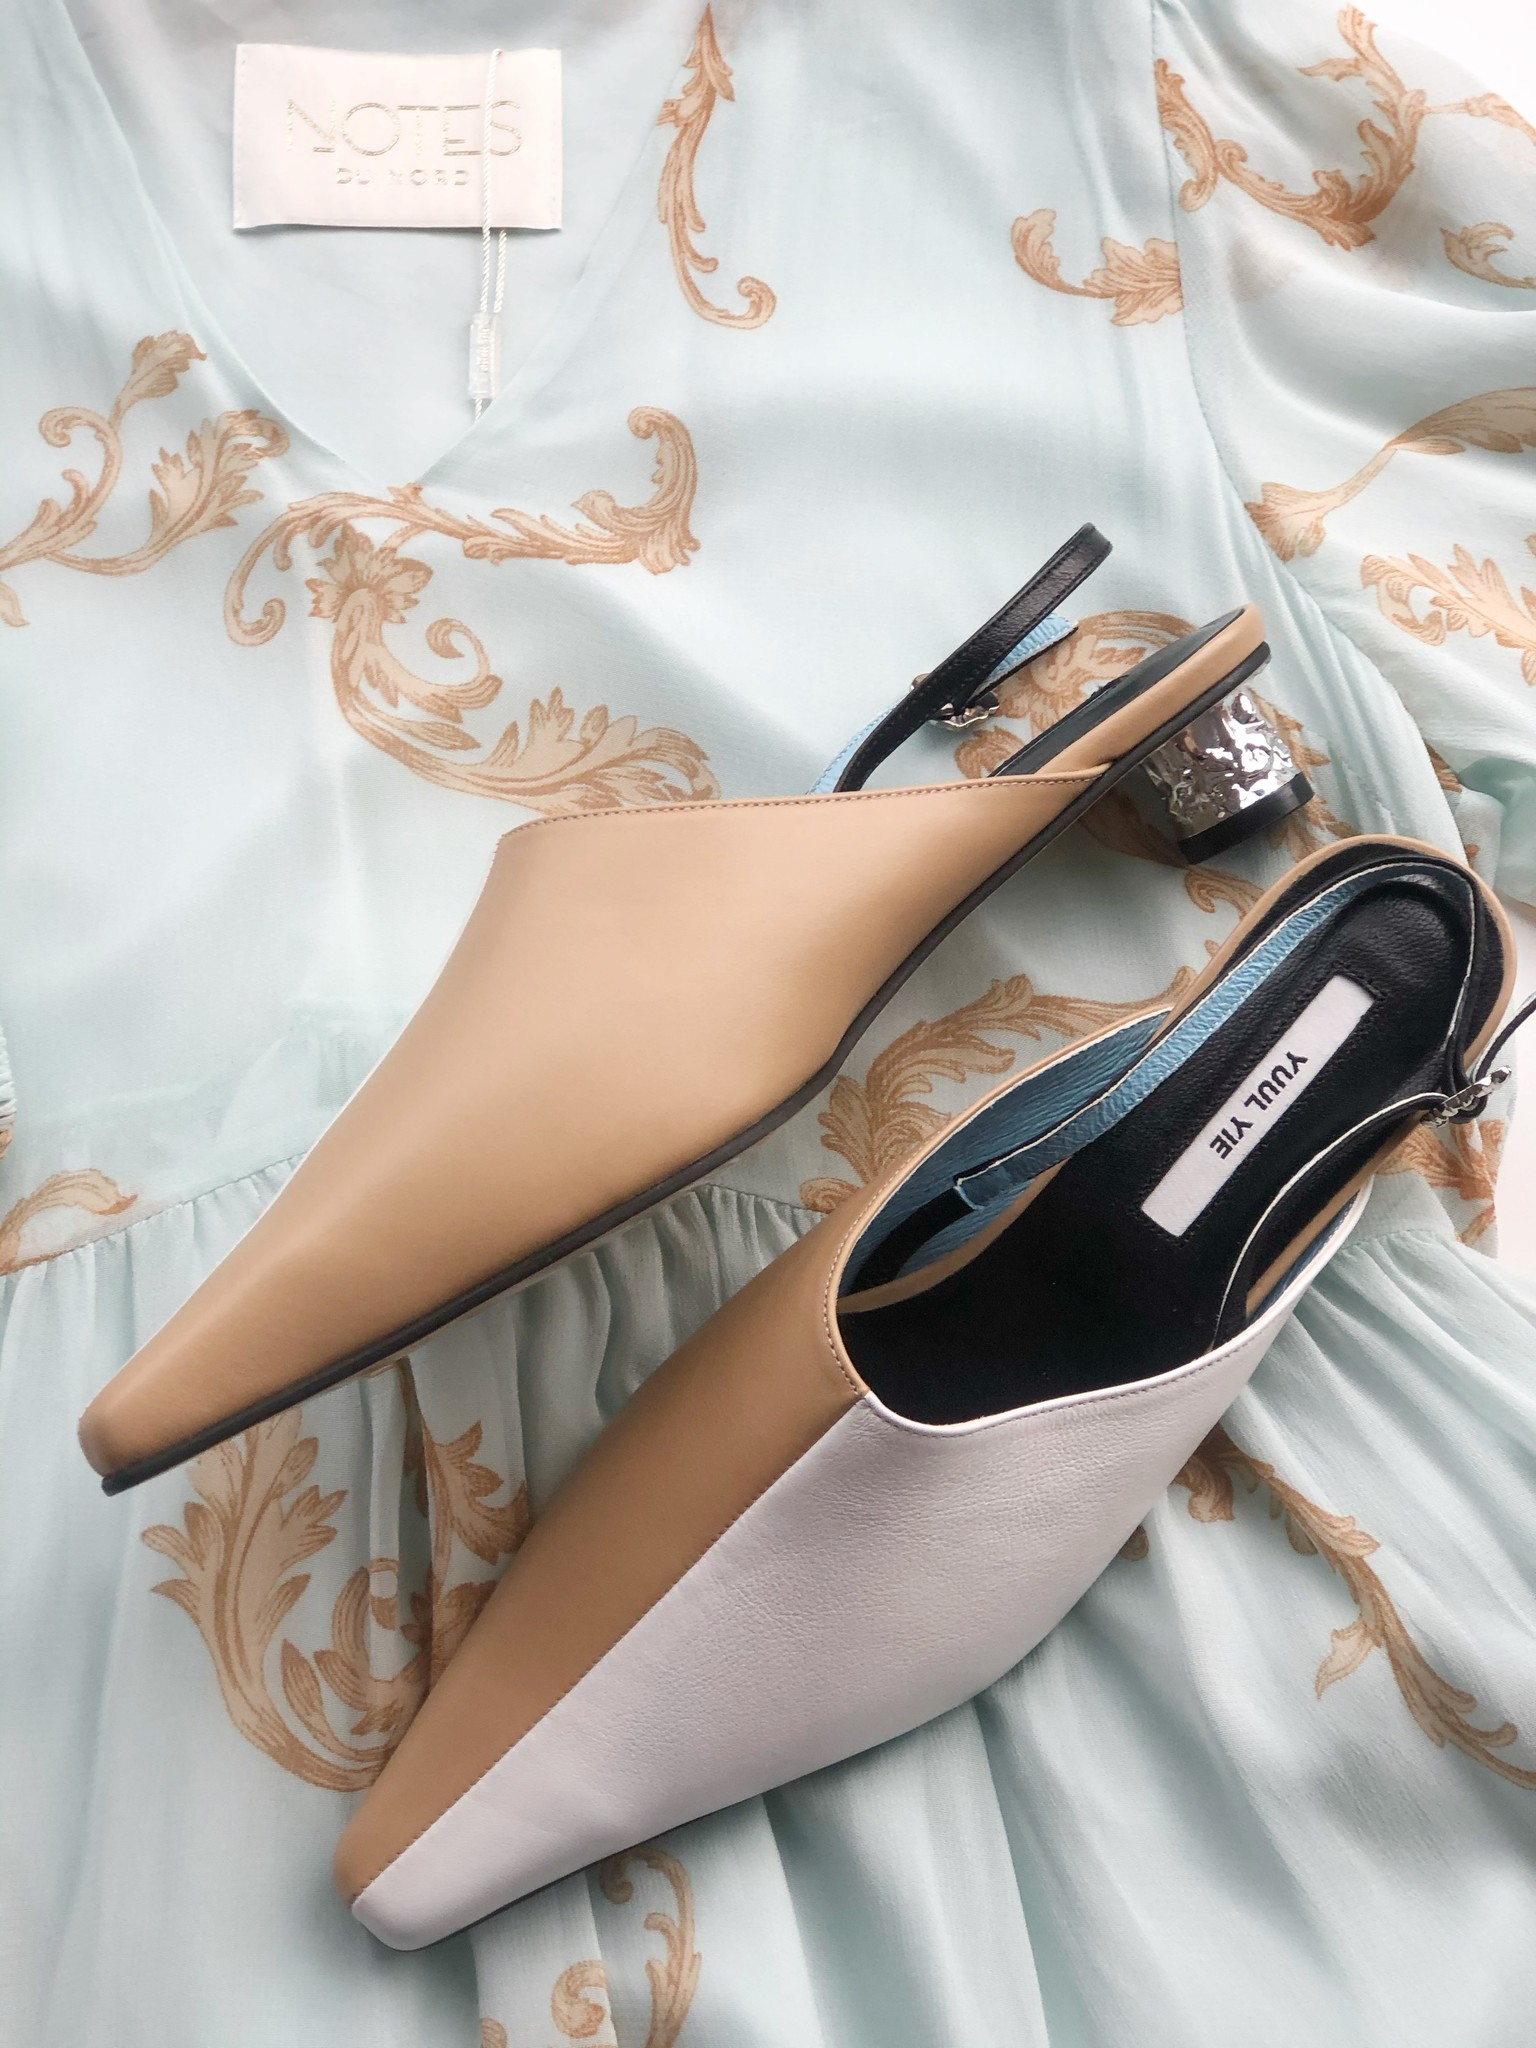 Yuul Yie BEIGE AND WHITE SHOES WITH SILVER HEELS